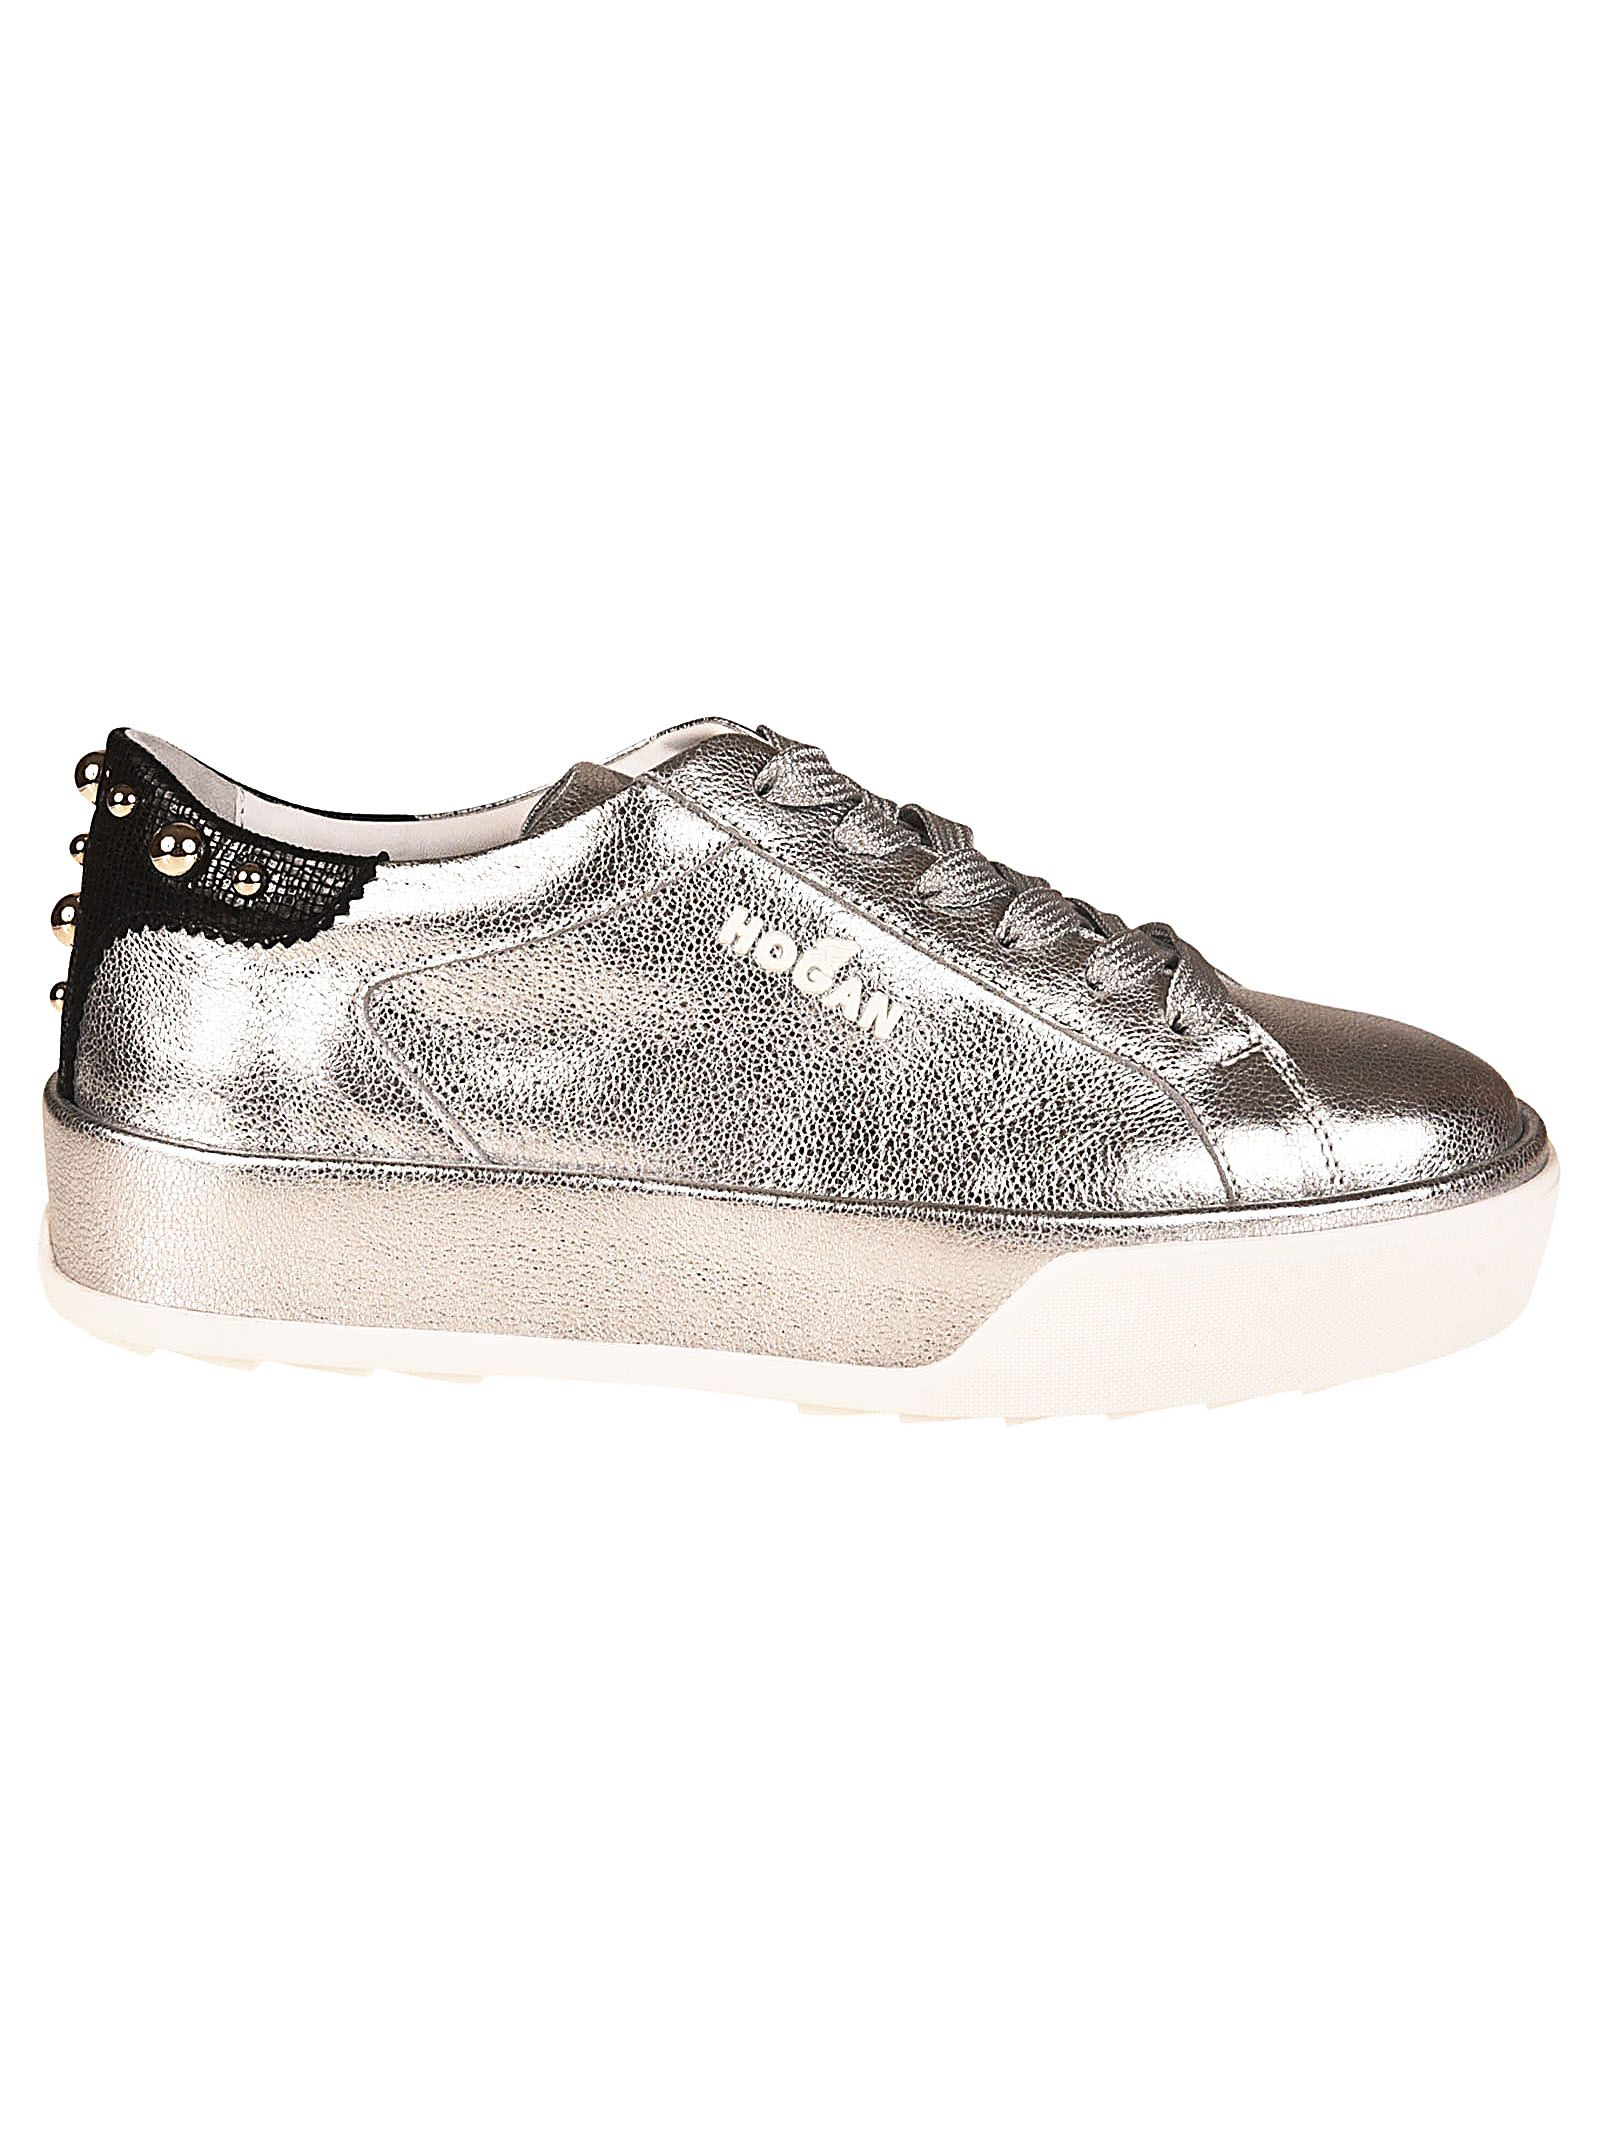 Hogan R320 Shiny Sneakers Choice Online How Much Sale Online Shop Cheap Price Wide Range Of Cheap Price Cheap Sale Choice OMZ50